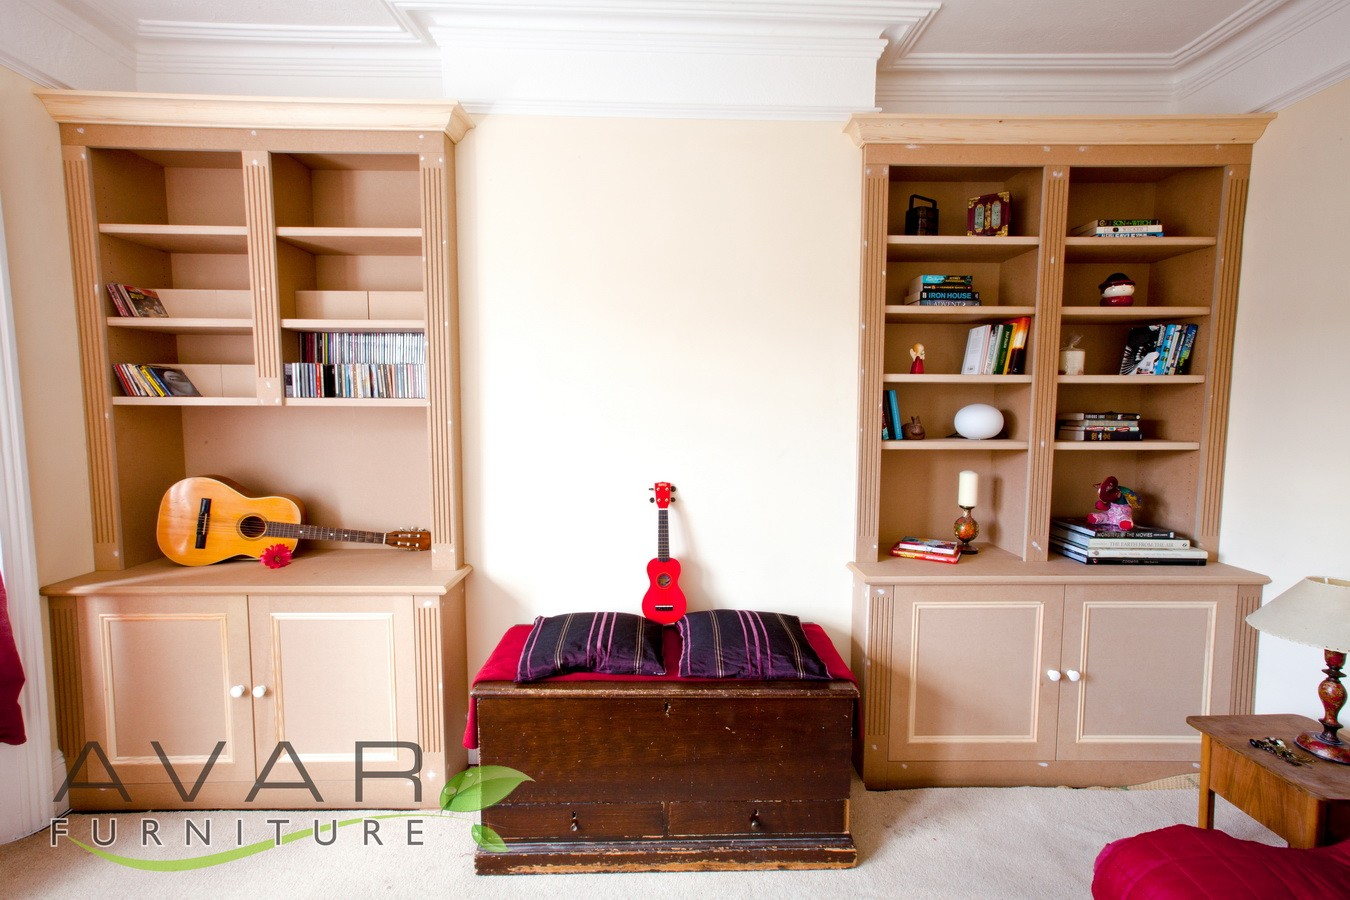 Alcove Units Ideas Gallery 6 North London Uk Avar Furniture